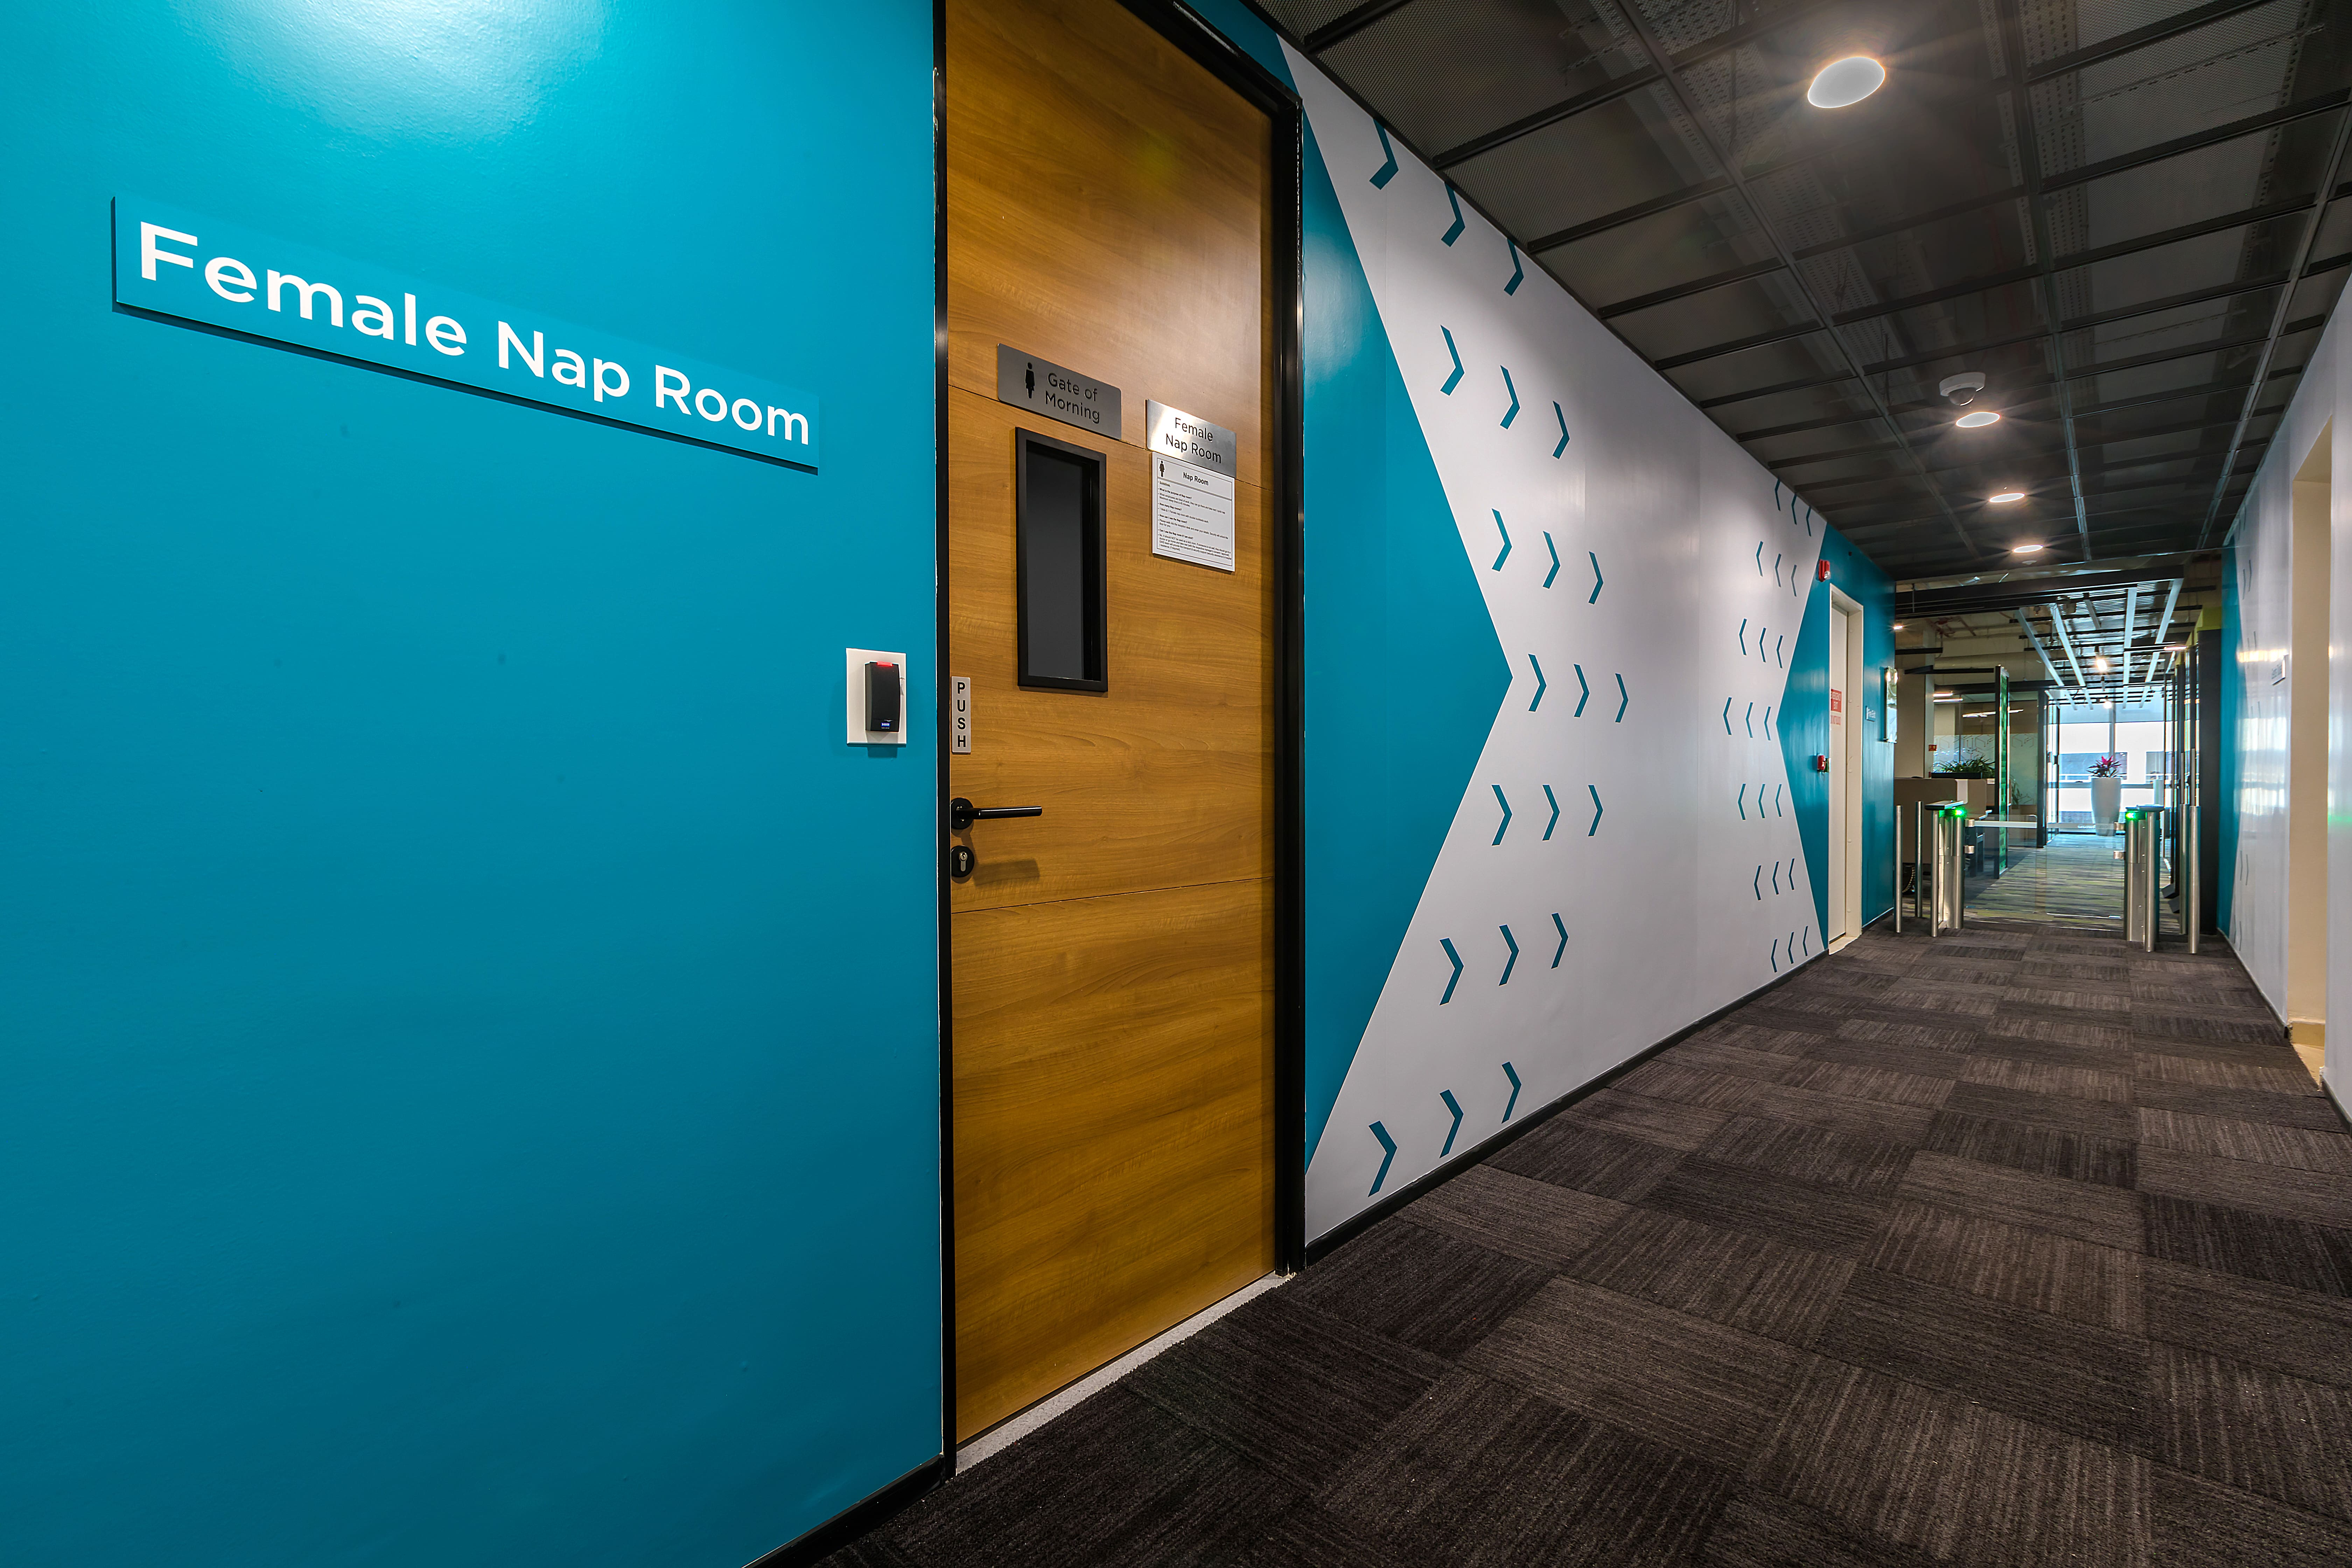 Nap rooms and mothers' rooms have been designed by Space Matrix to cater to a diverse workplace